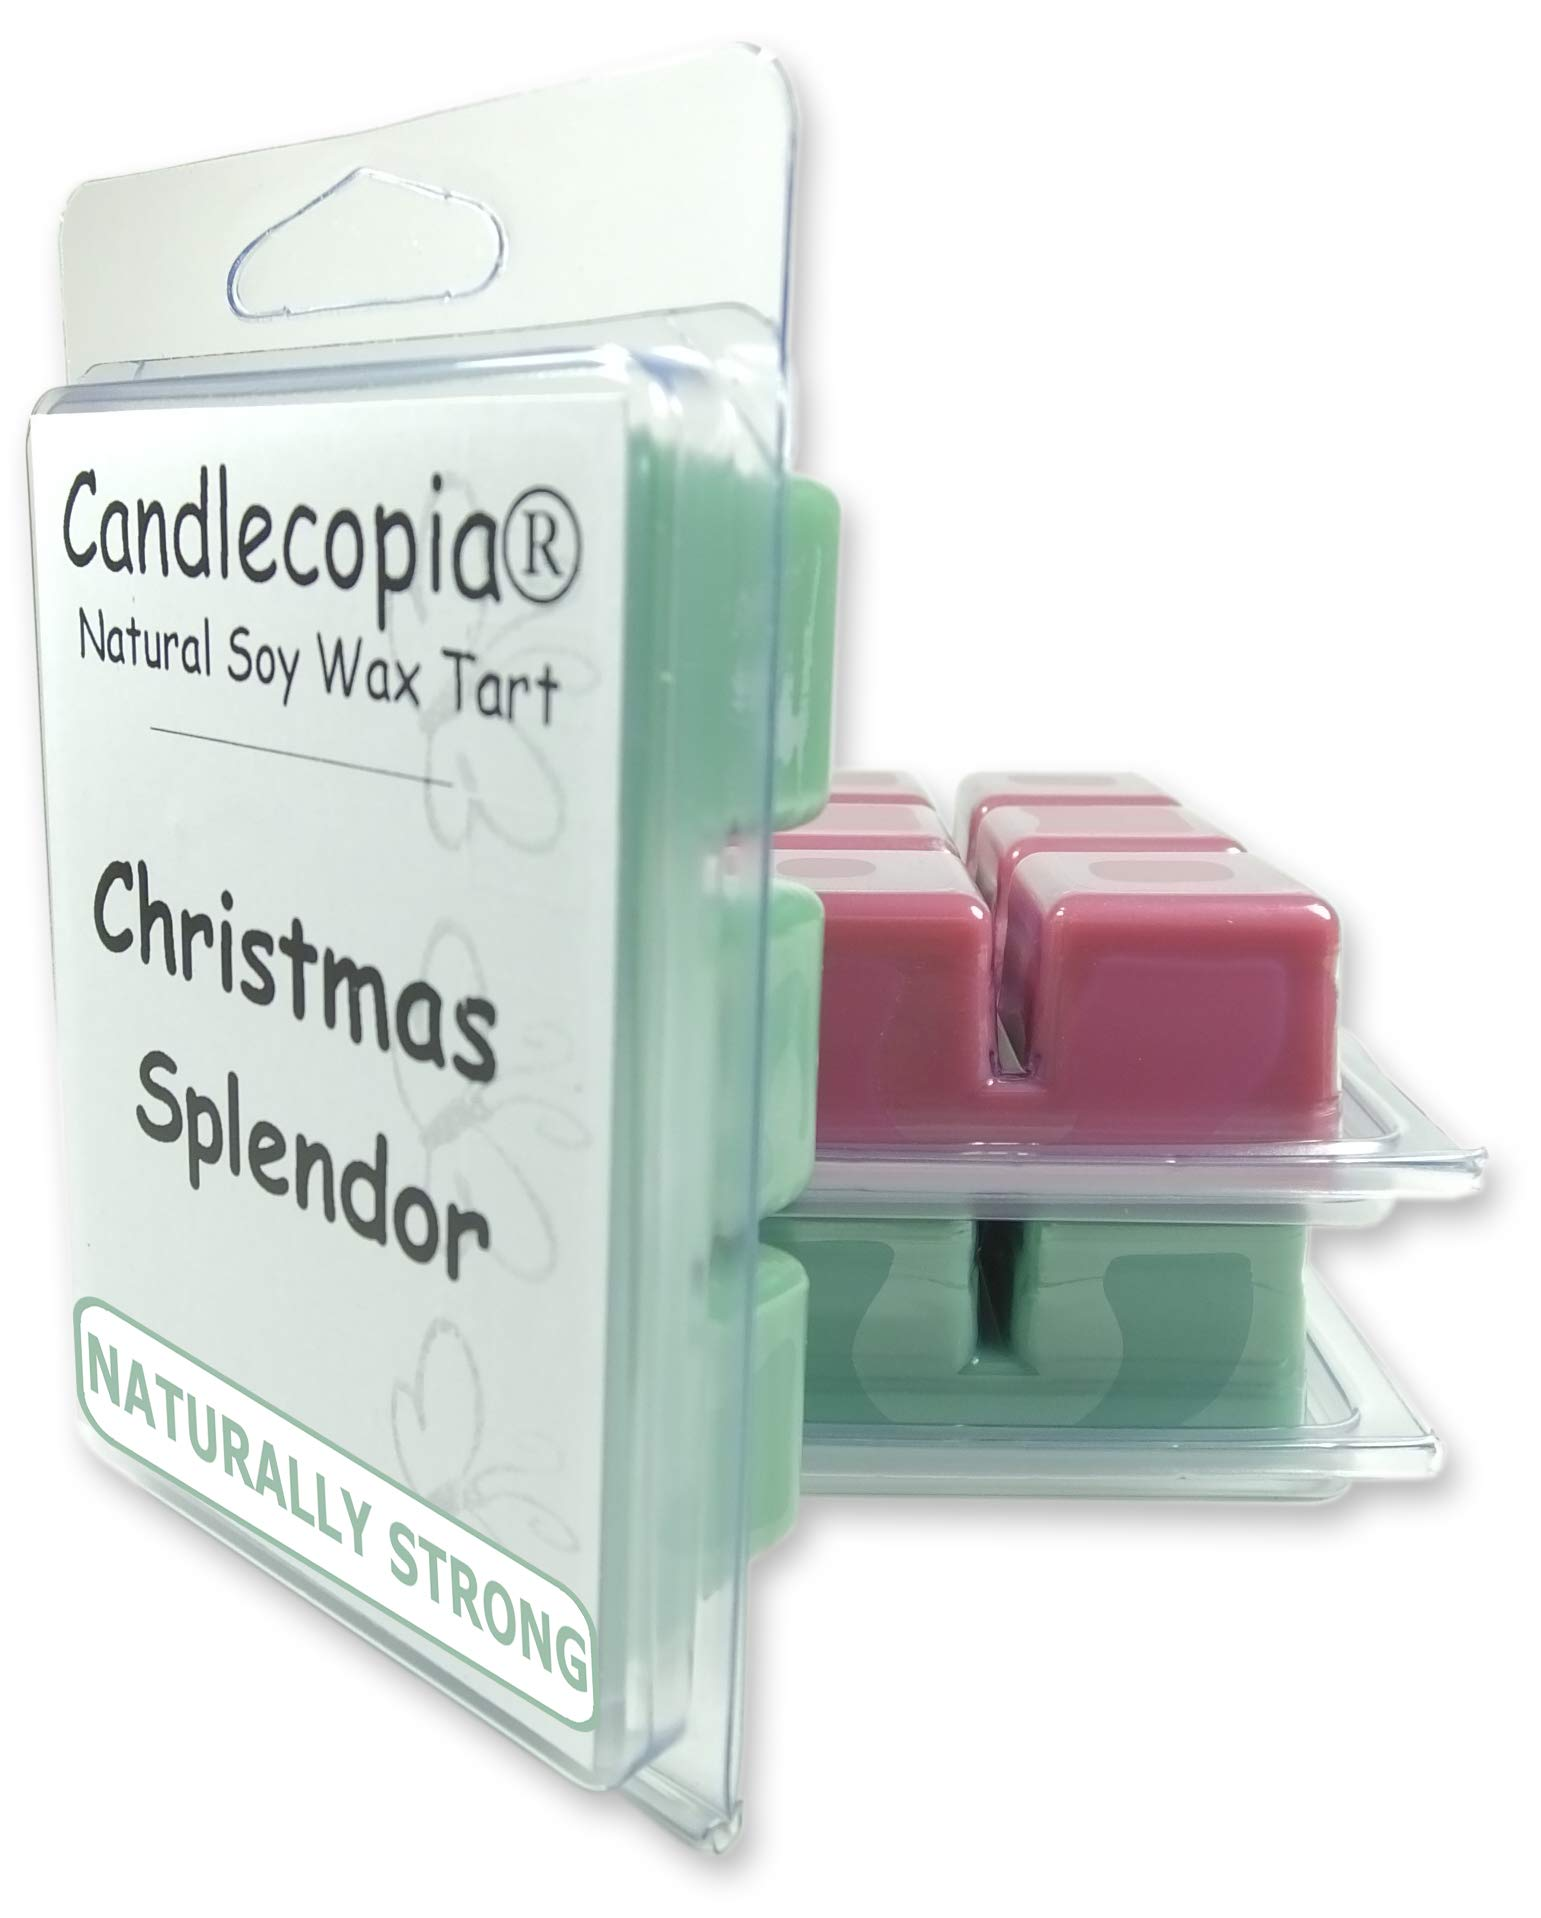 Candlecopia Christmas Hearth, Mistletoe and Christmas Splendor Strongly Scented Hand Poured Vegan Wax Melts, 18 Scented Wax Cubes, 9.6 Ounces in 3 x 6-Packs